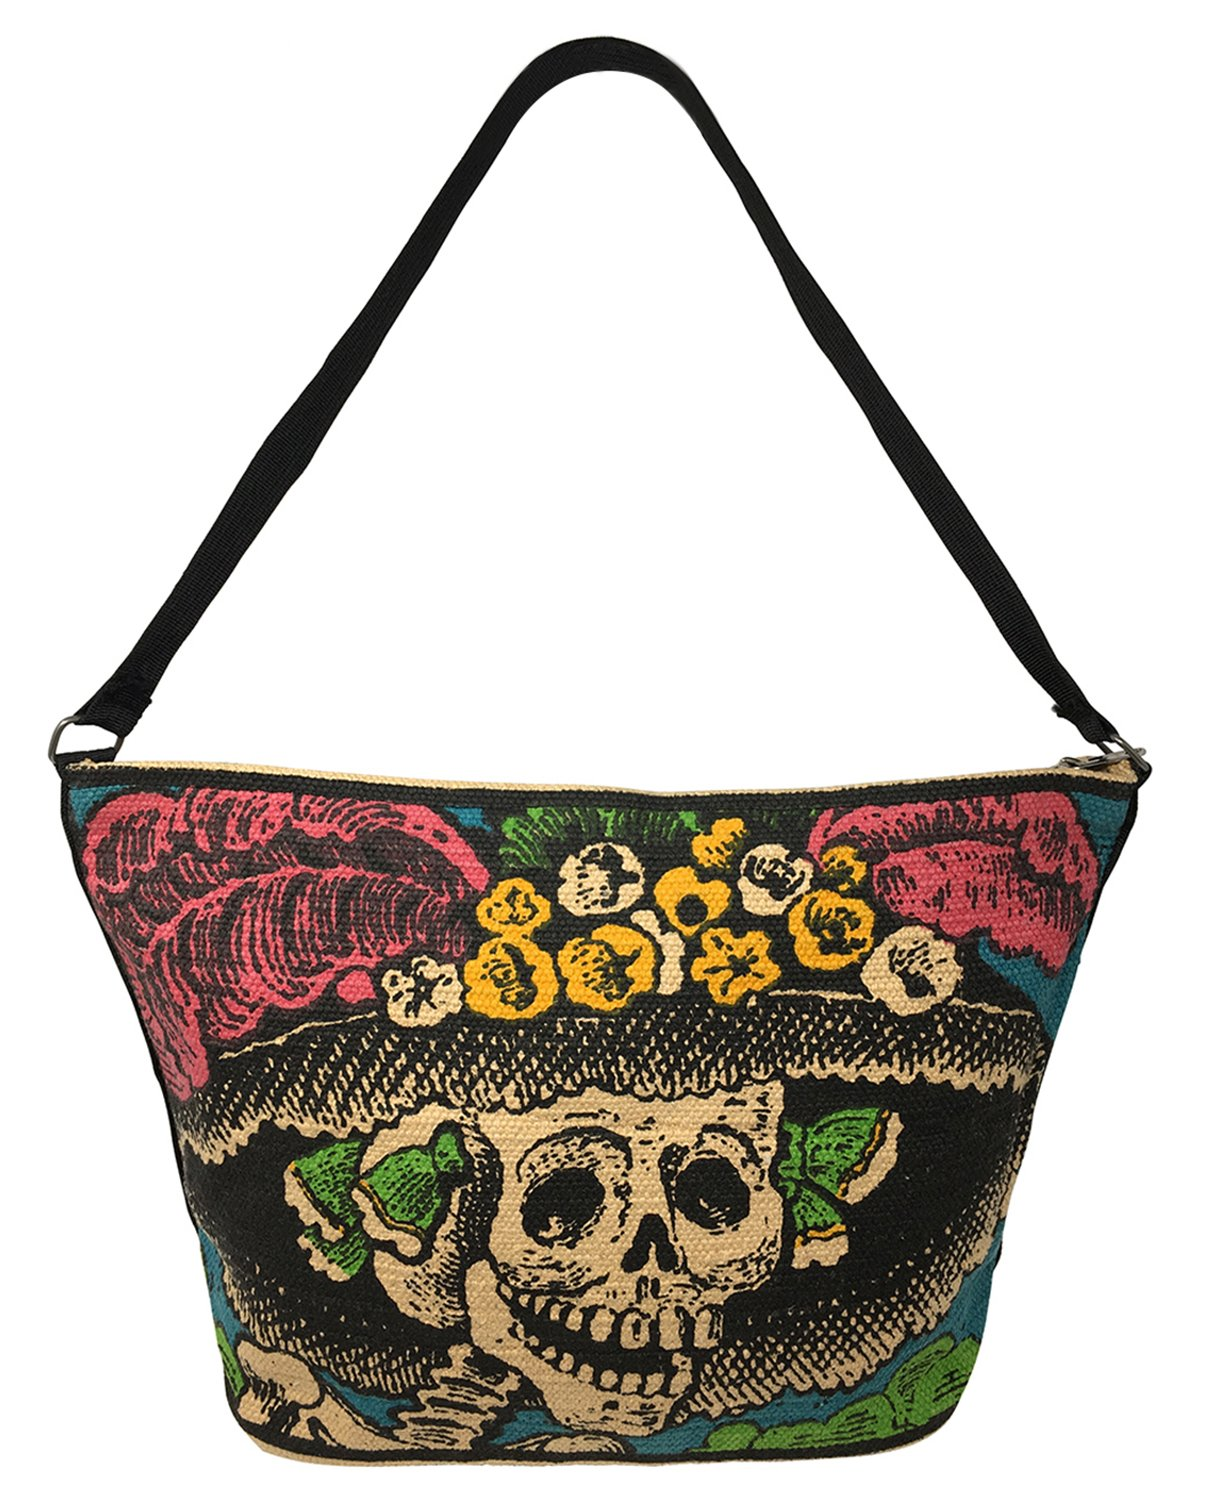 SpiritStar Sugar Skull Purse: Day of the Dead Inspired Daily Travel Bag Made with 100% Cotton (Catrina)